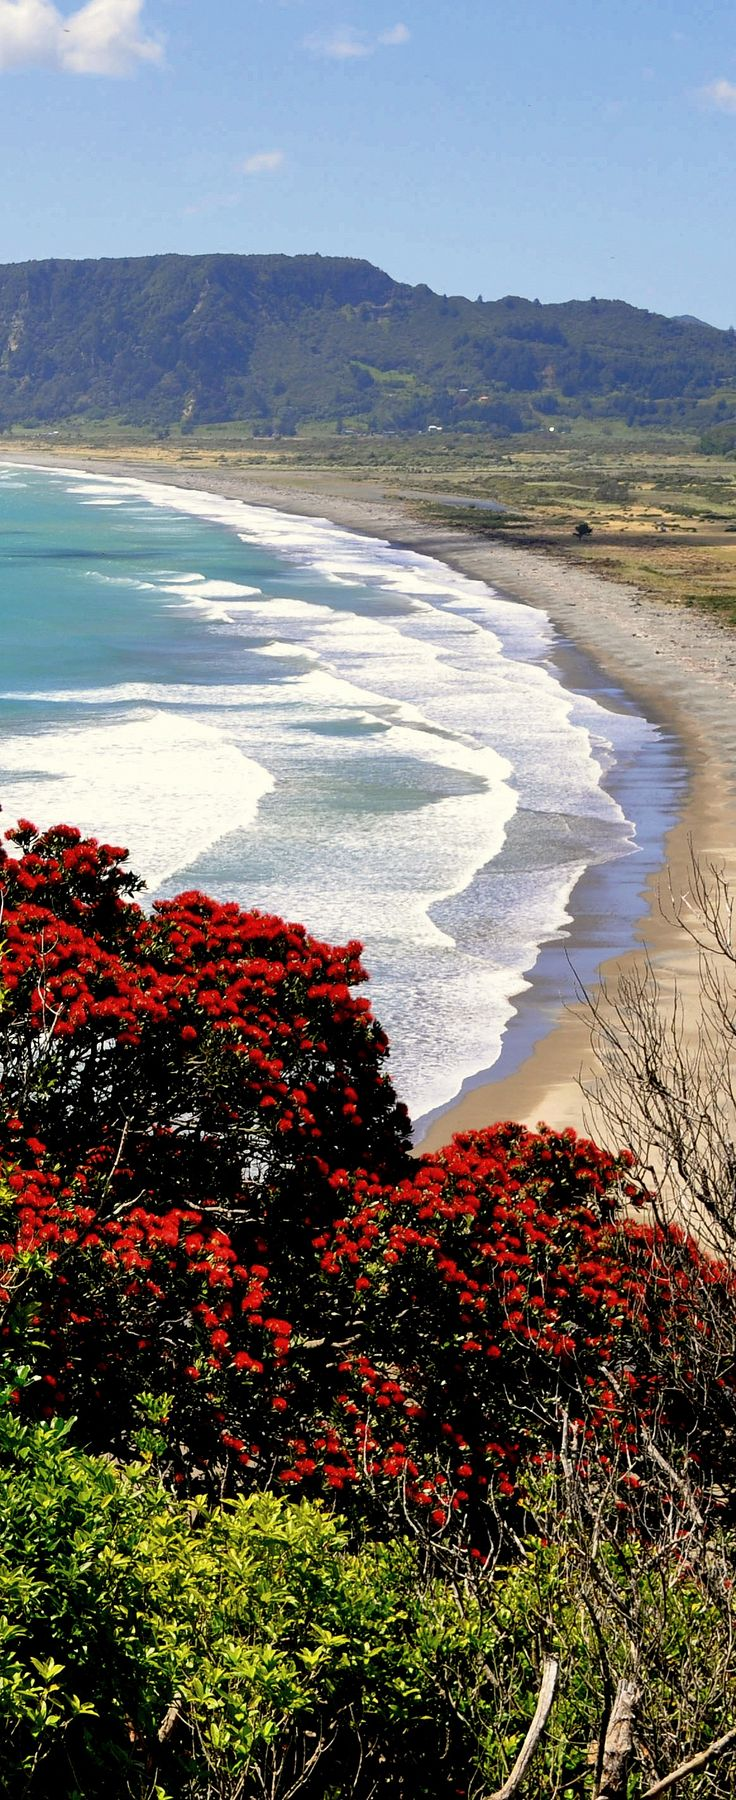 Hicks Bay is located on the East Cape, 186km from Gisborne of New Zealand